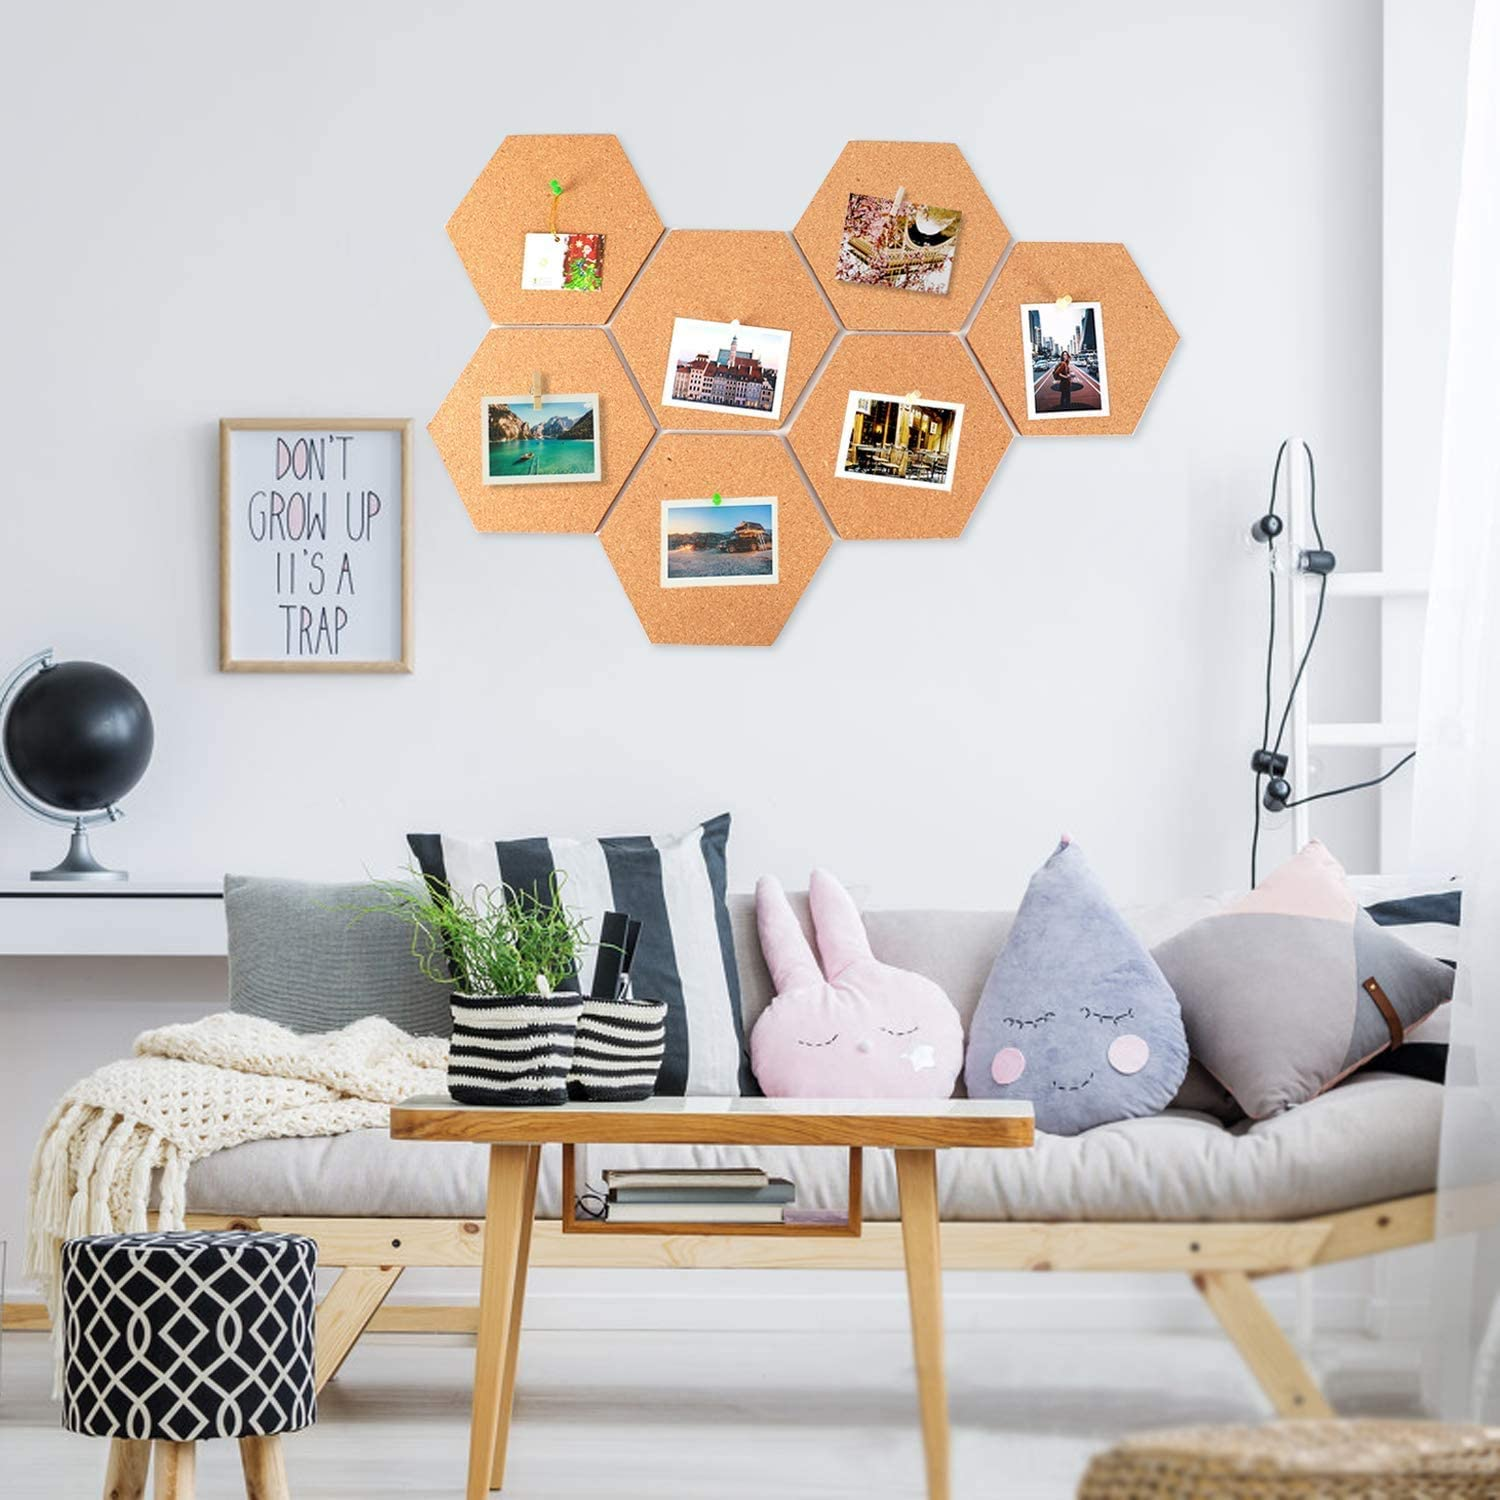 Set of 10 Hexagon Cork Notice Board Self-Adhesive Wall Pin Board with 20 Push Pins for Office Home Kitchen Kids Bedroom Walls Decor Cork Board DIY Pin Boards 8 x 7 inches